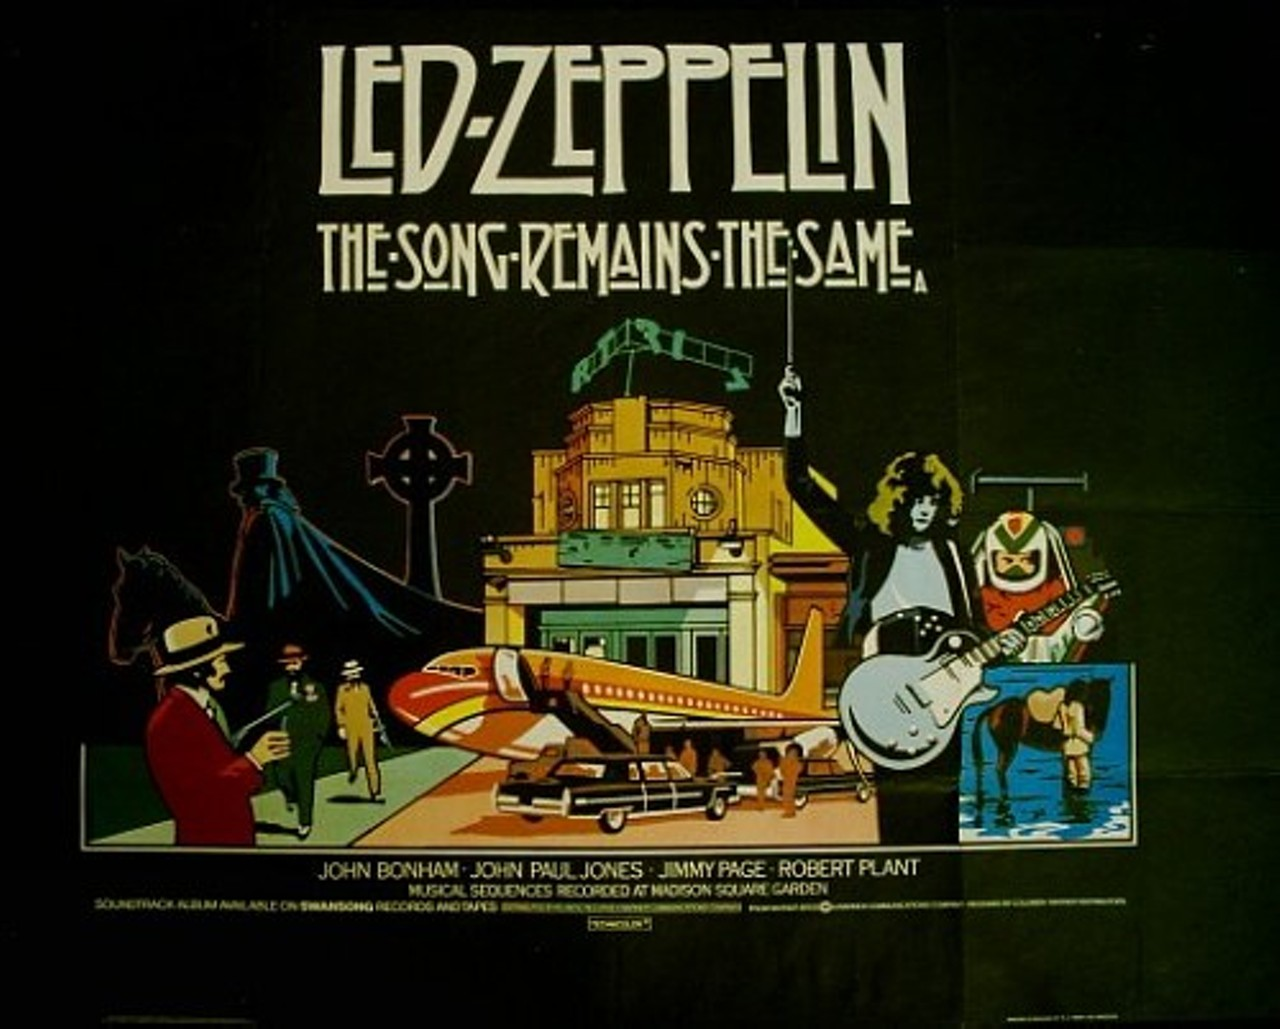 Led Zeppelin → The Song Remains The Same